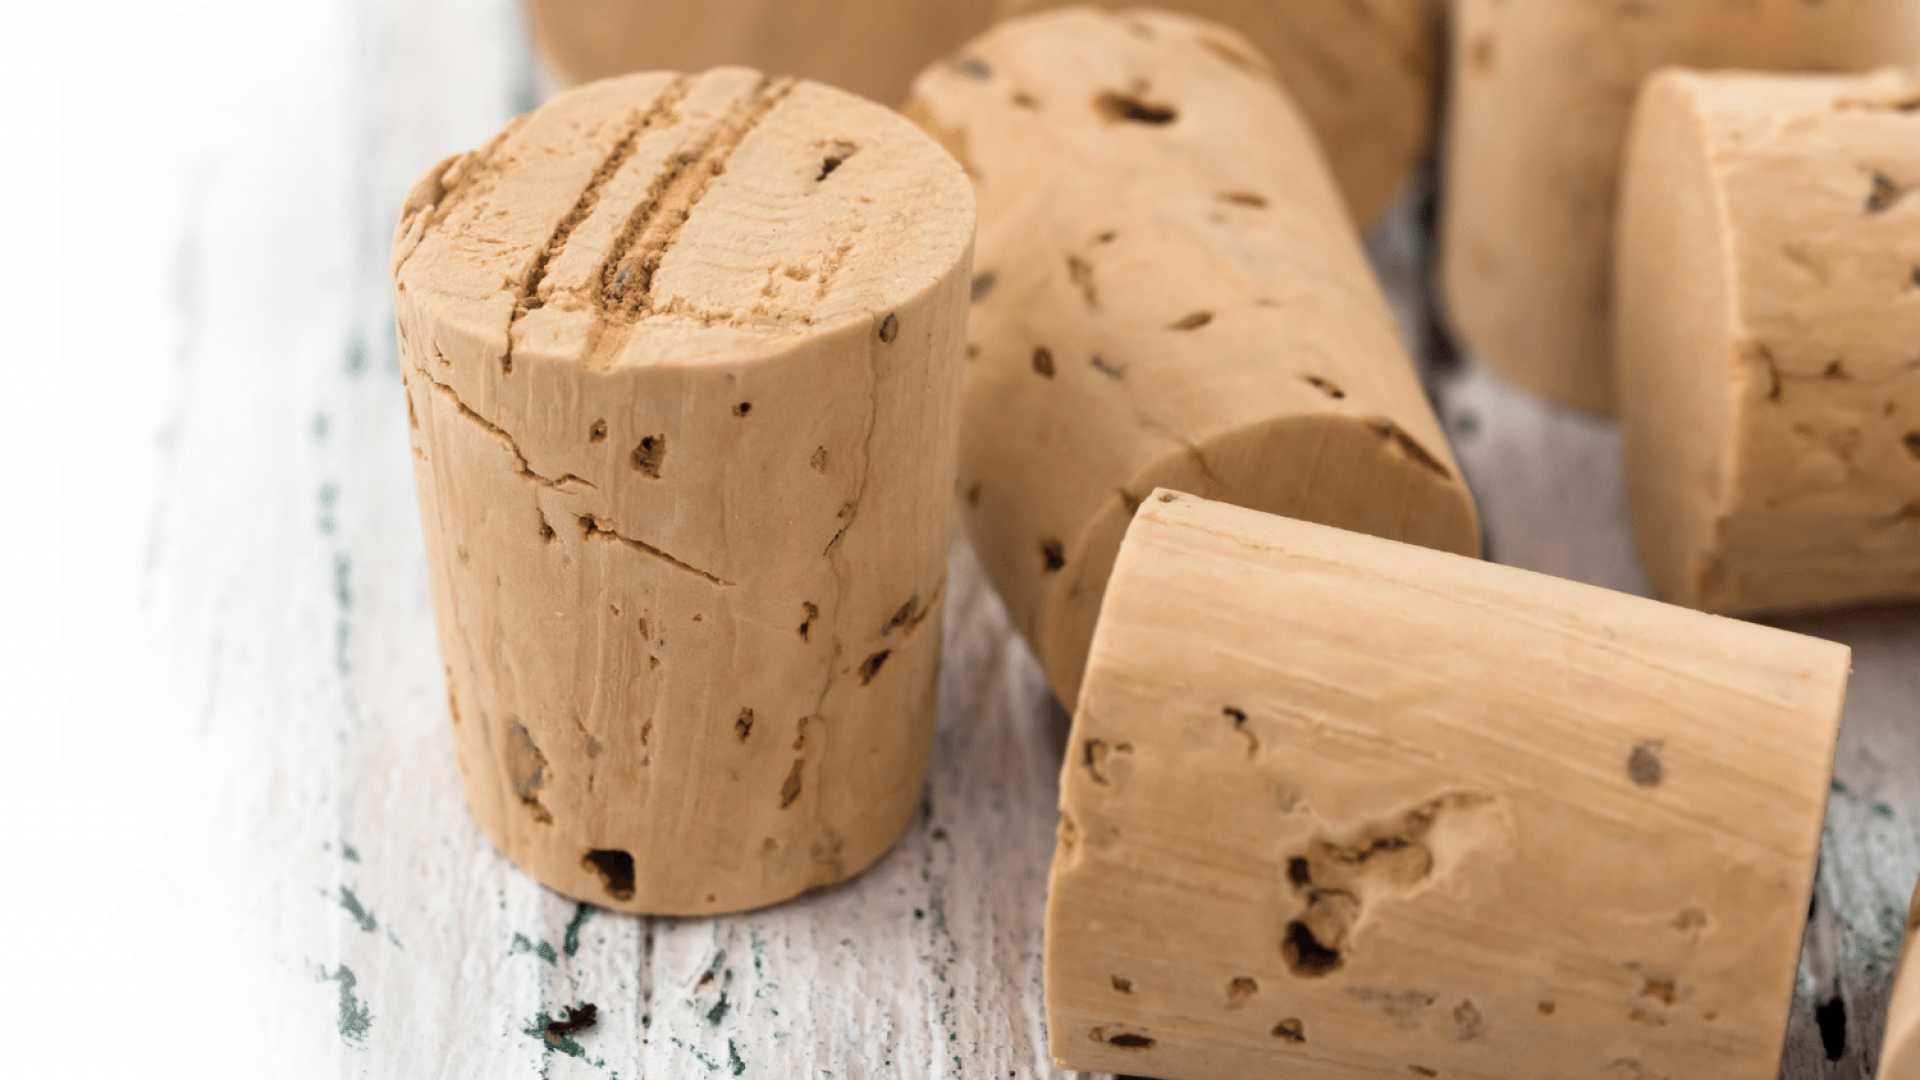 Is Cork Eco Friendly? A detailed look into 'nature's most sustainable material'